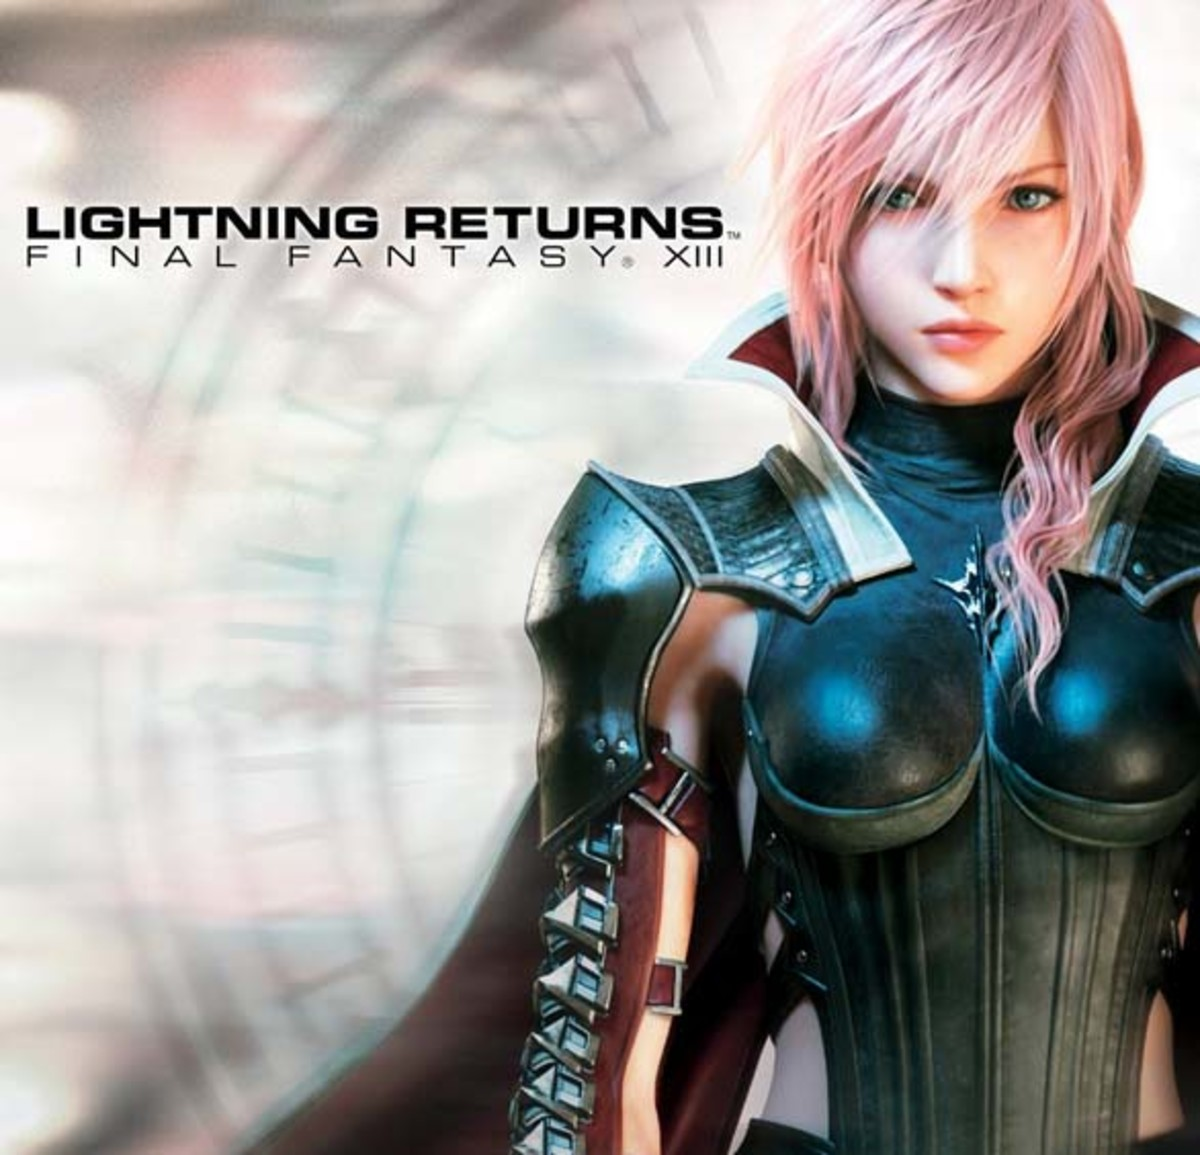 Lightning Returns Final Fantasy XIII Schemata - that looks like an impressive garb to put into a scheme and use in battle.